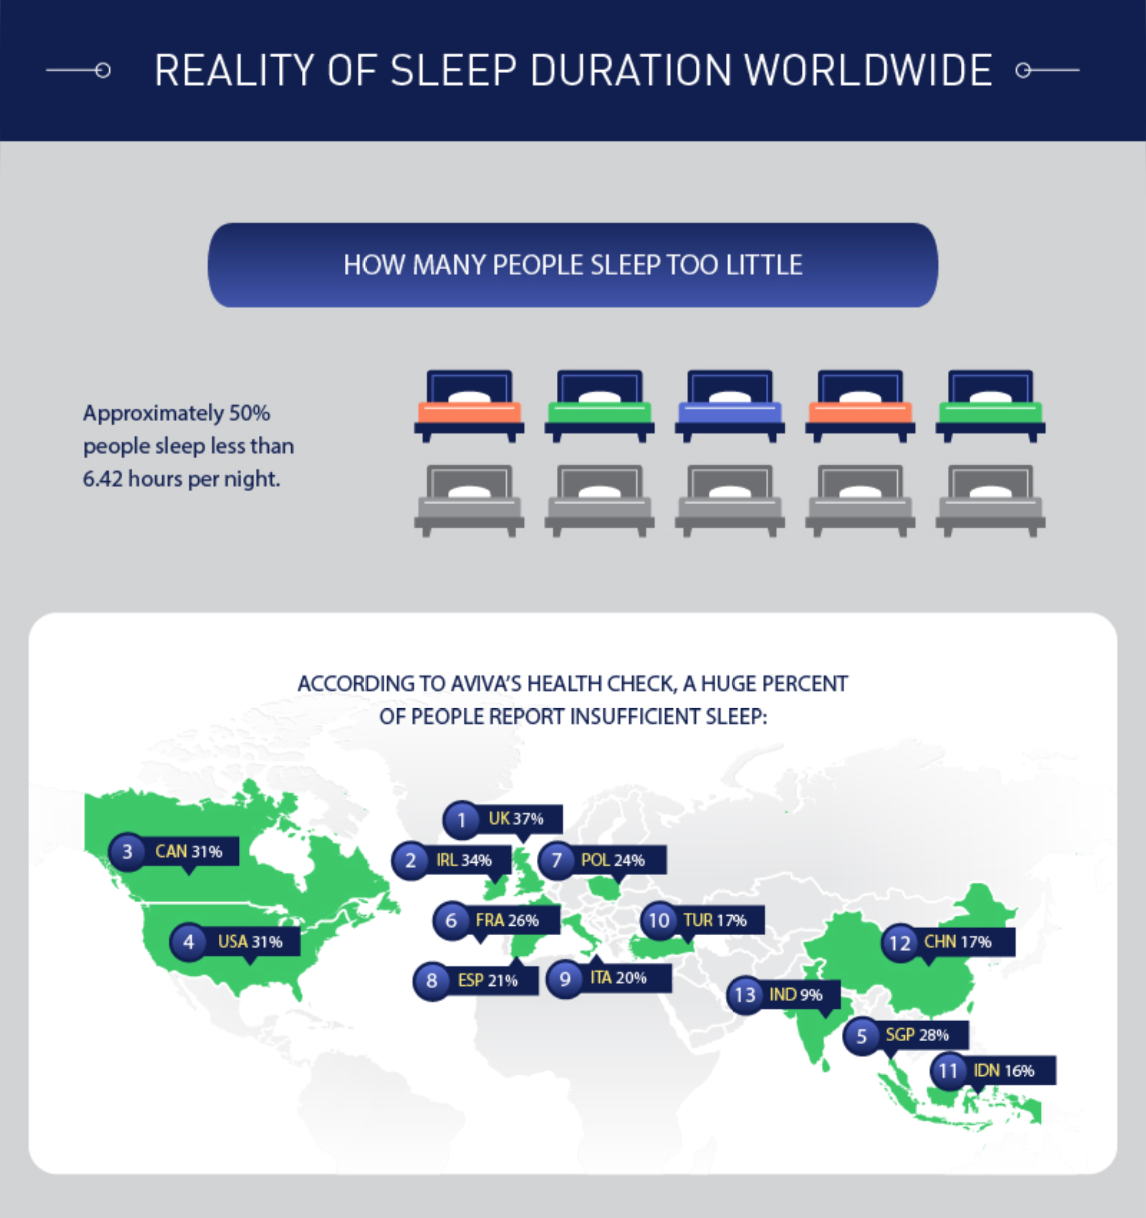 reality of sleep duration worldwide infographic